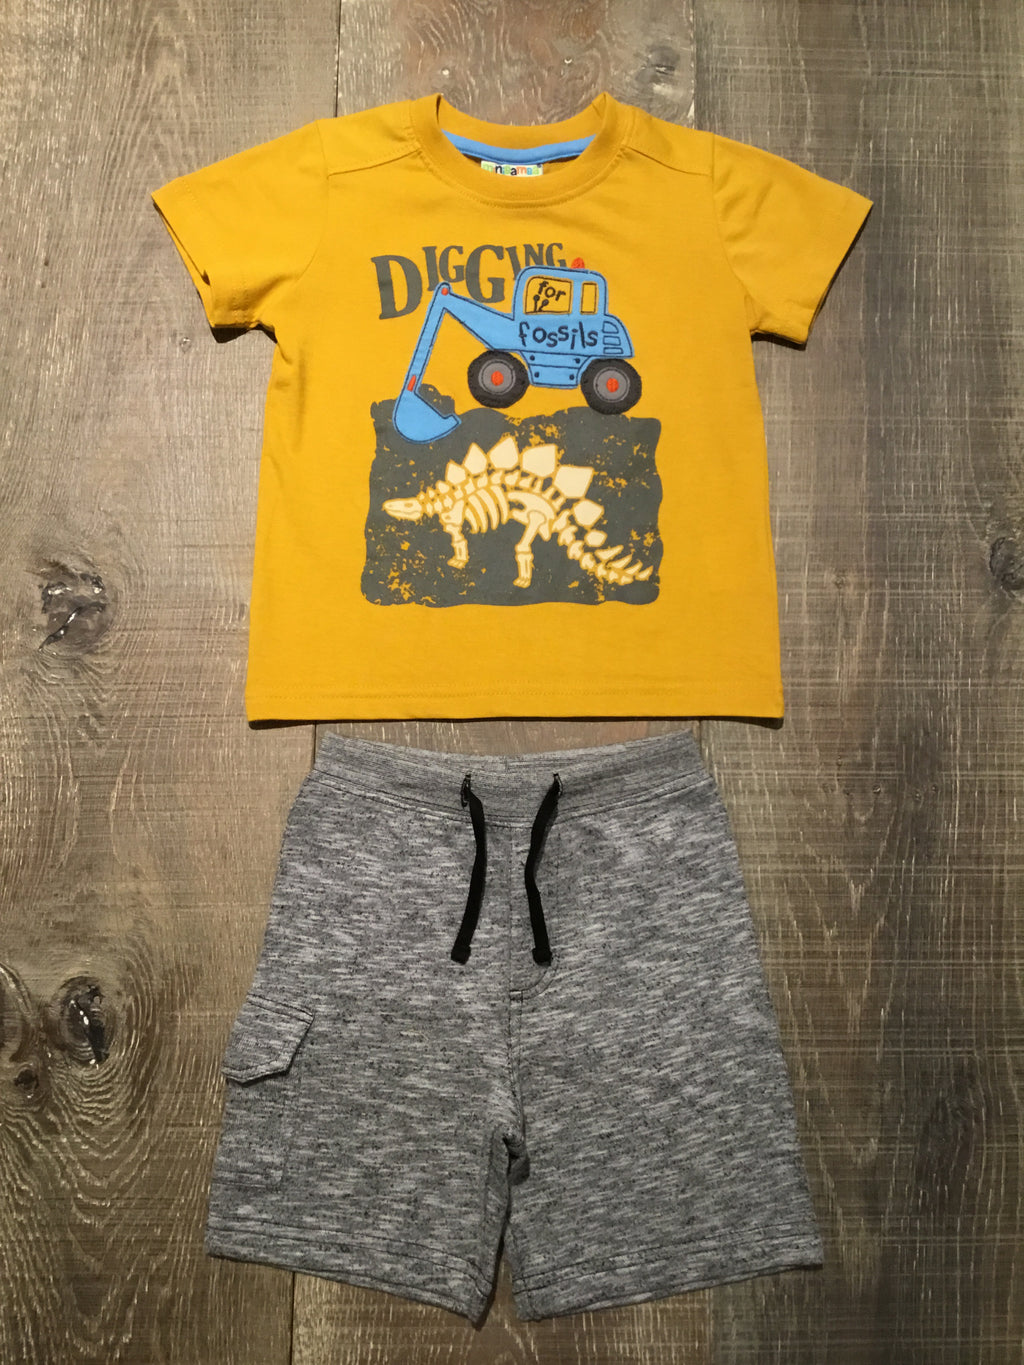 Digging for Dinos Shirt & Shorts Set